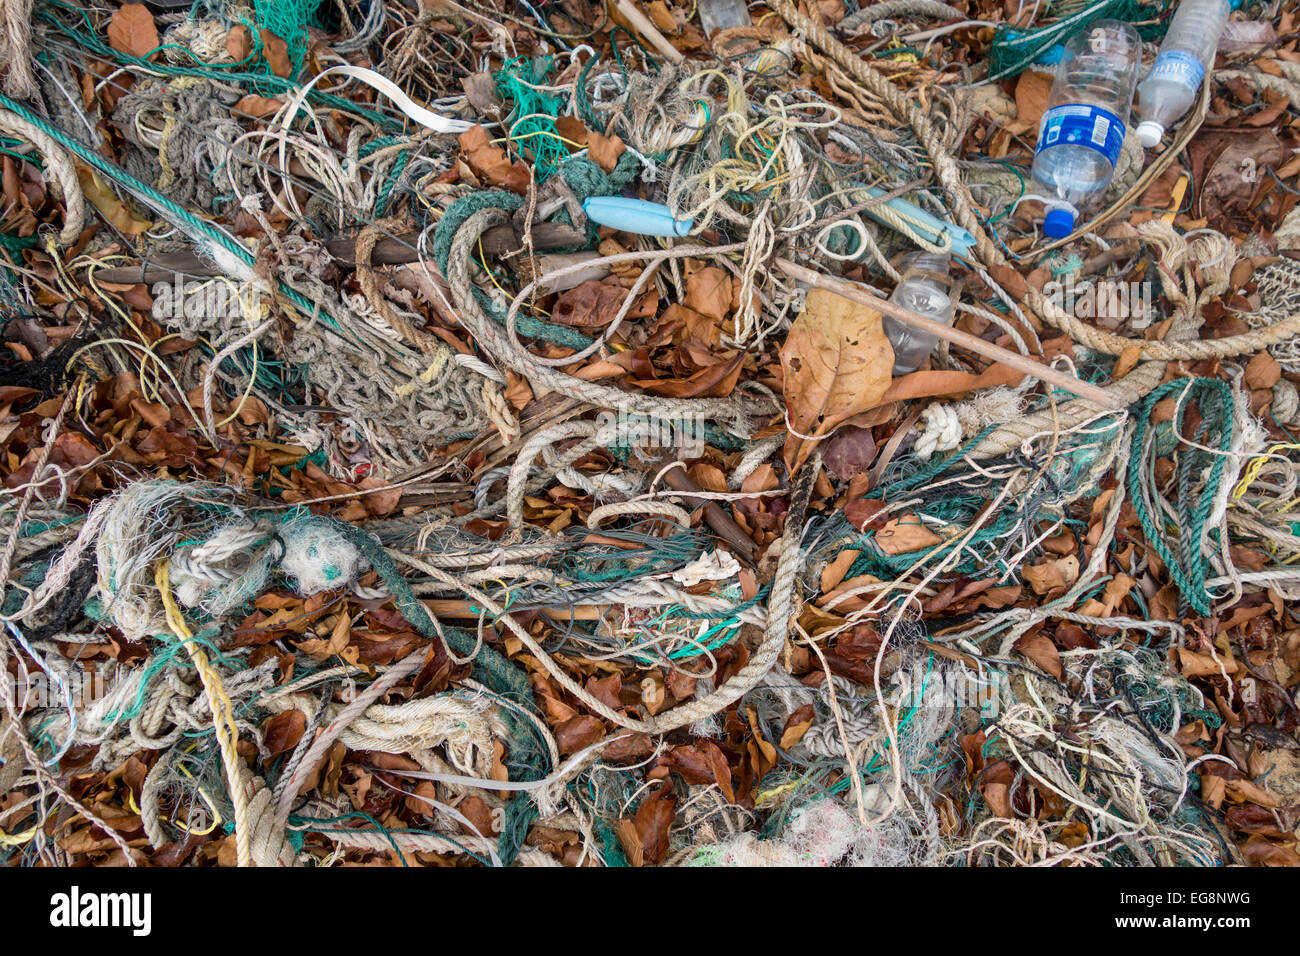 Garbage left on the beach in Malaysia - Stock Image